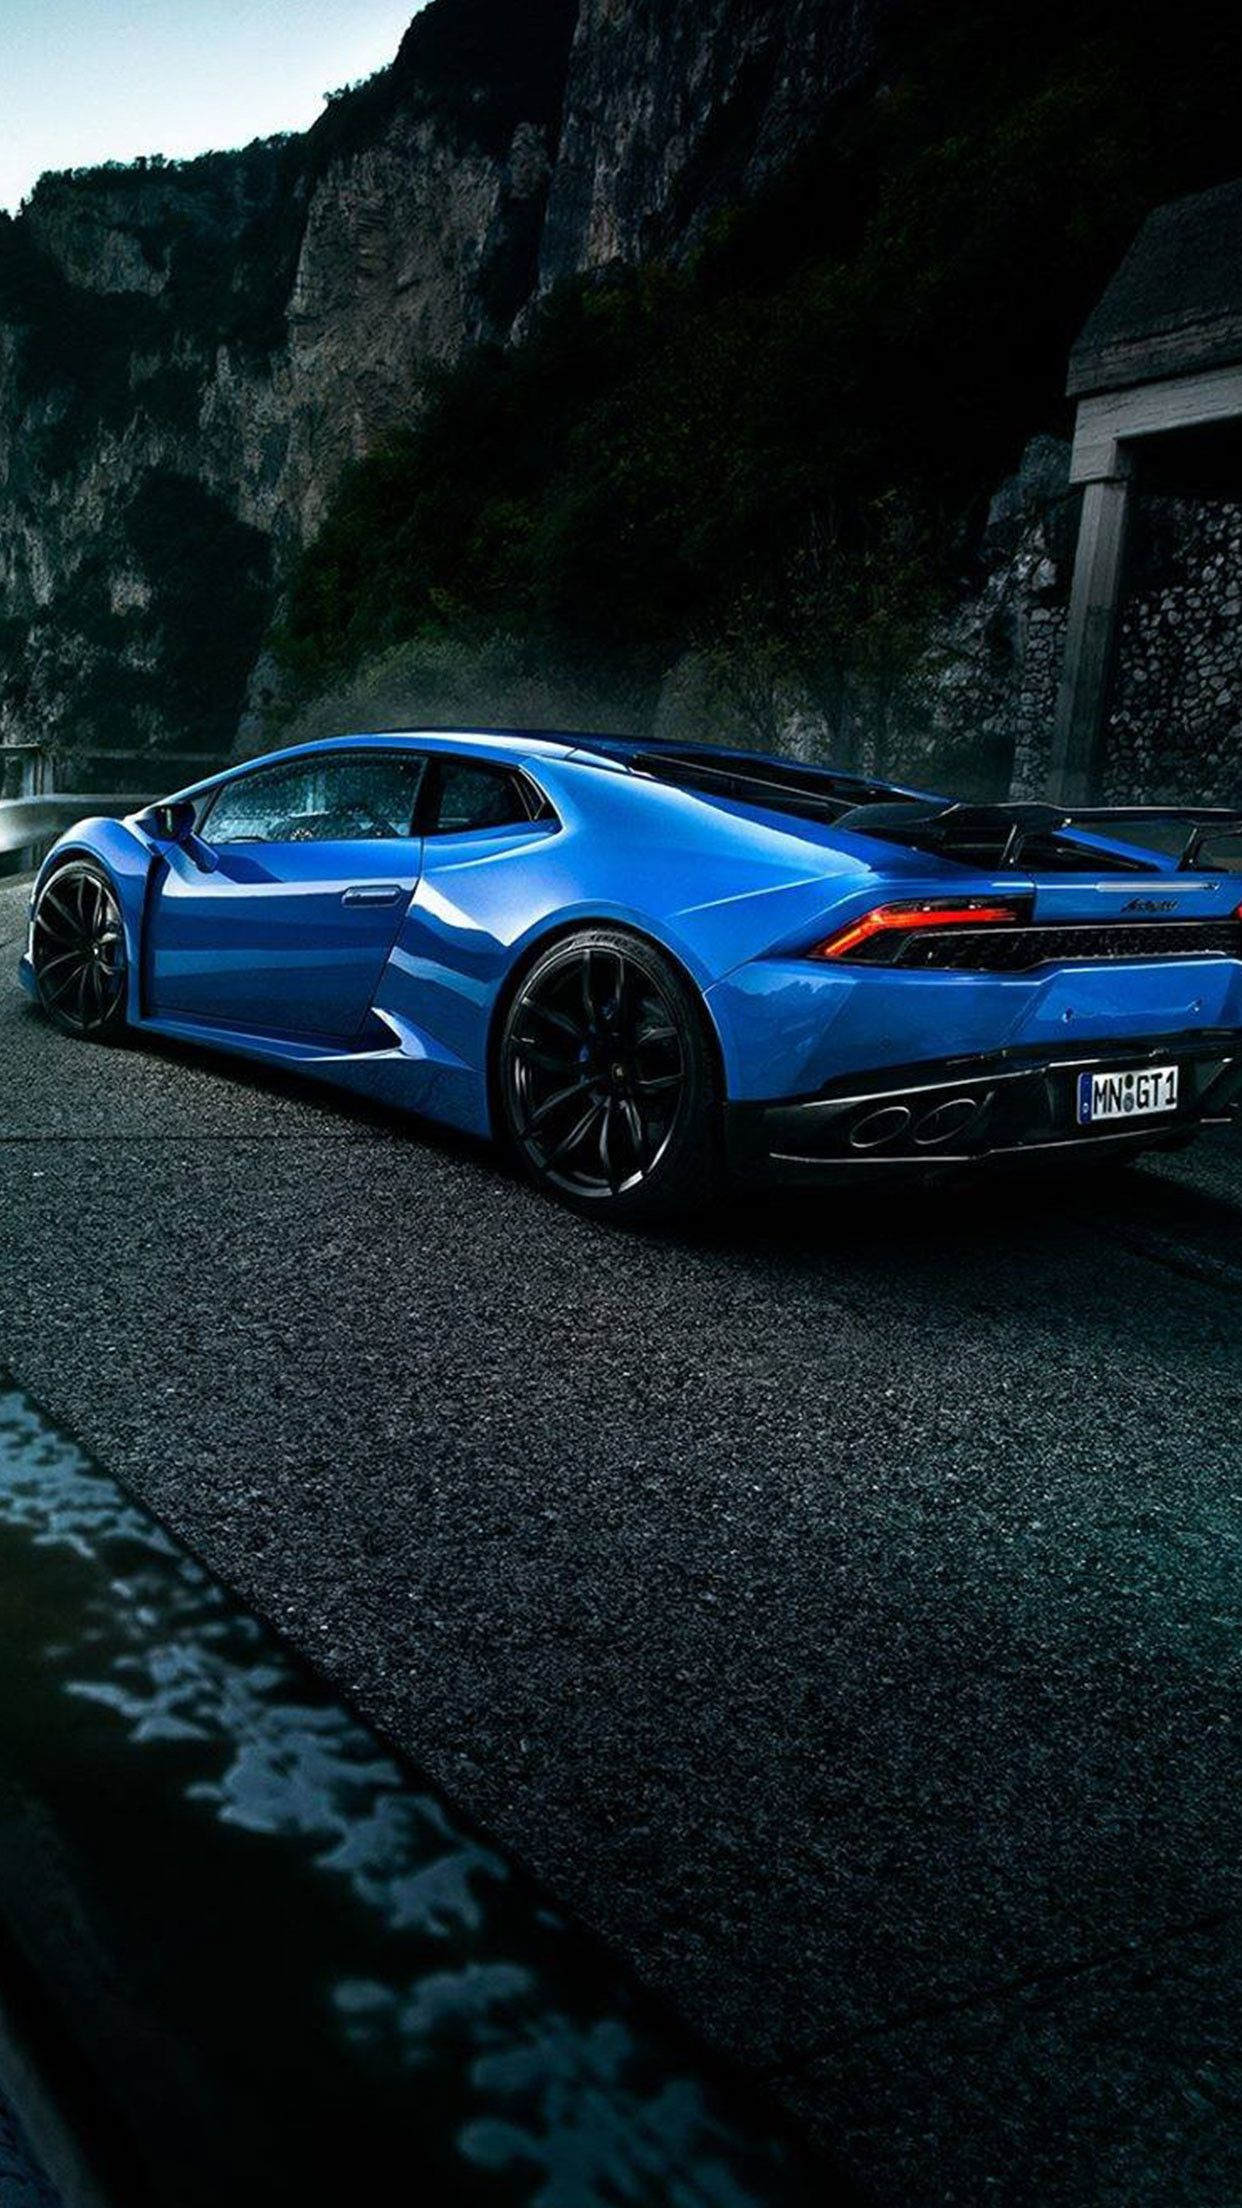 Blue Cool Car Wallpapers Top Free Blue Cool Car Backgrounds Wallpaperaccess